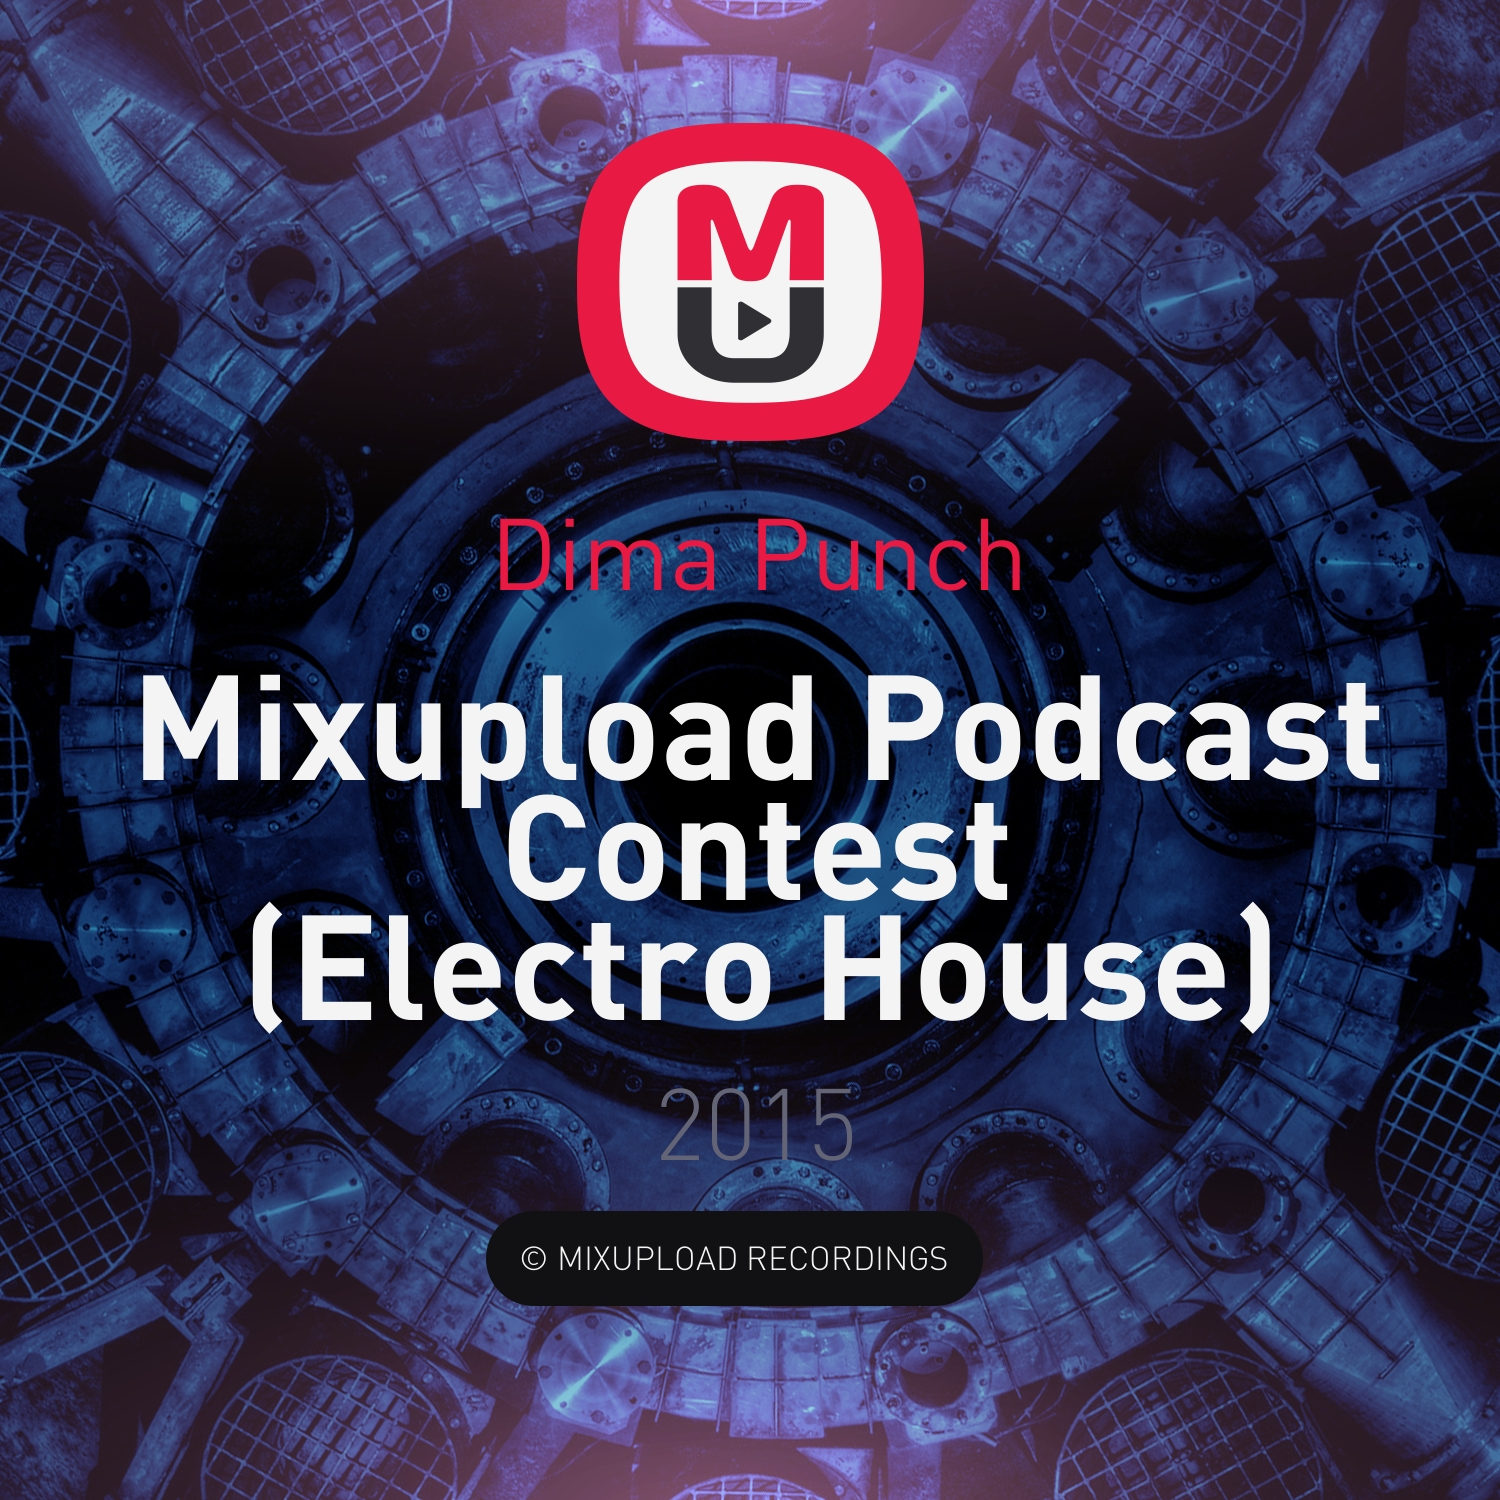 Dima Punch - Mixupload Podcast Contest  (Electro House)